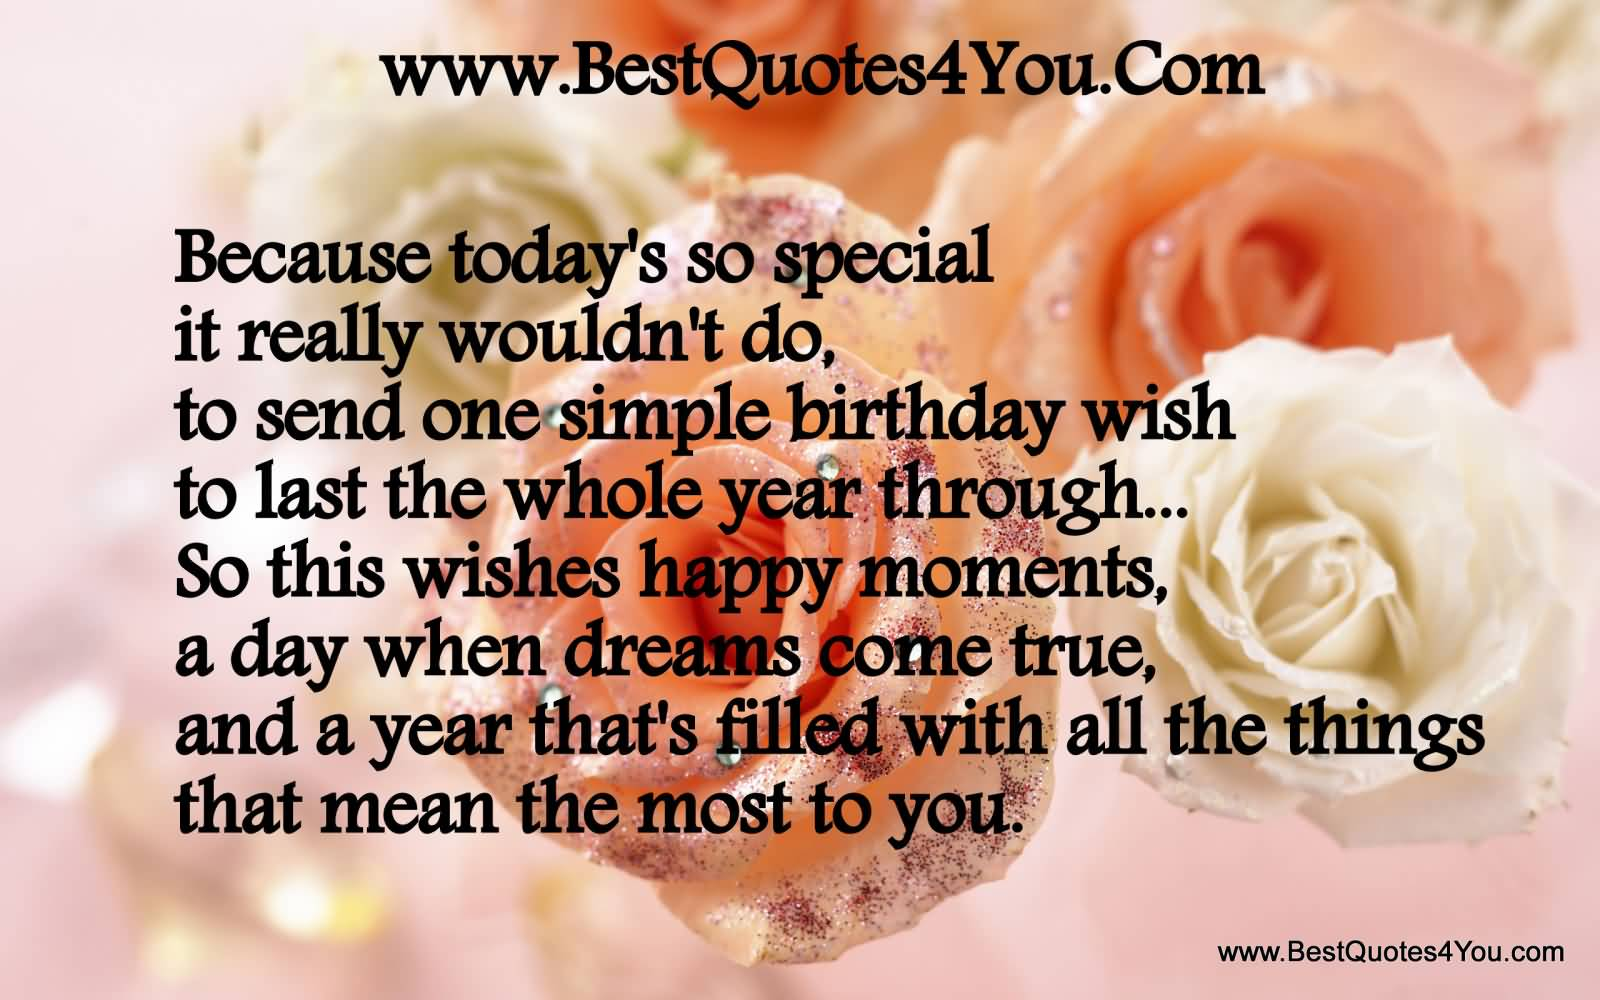 Happy Birthday Christian Quotes Because Today's So Special It Really Wouldn't Do To Send One